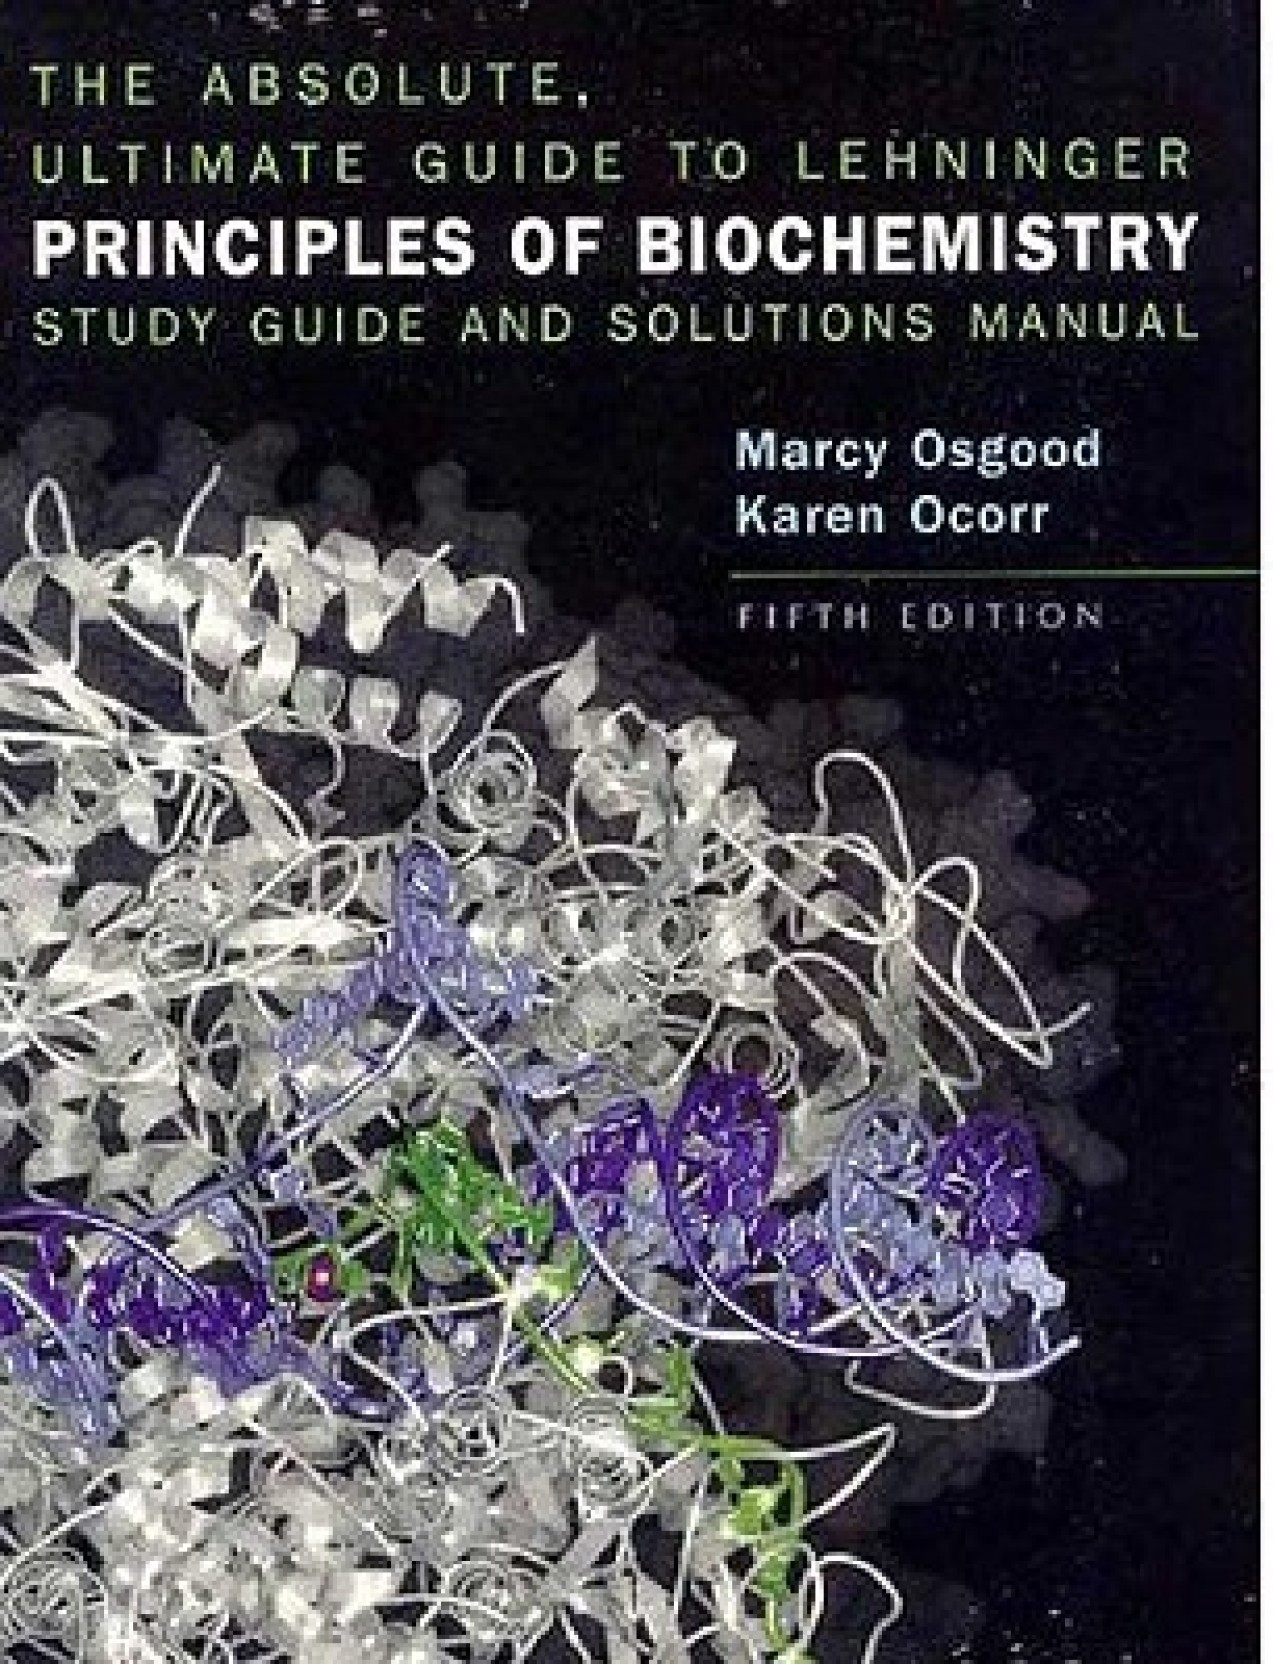 Lehninger Principles of Biochemistry Study Guide and Solutions Manual : The  Absolute, Ultimate Guide 5th. ADD TO CART